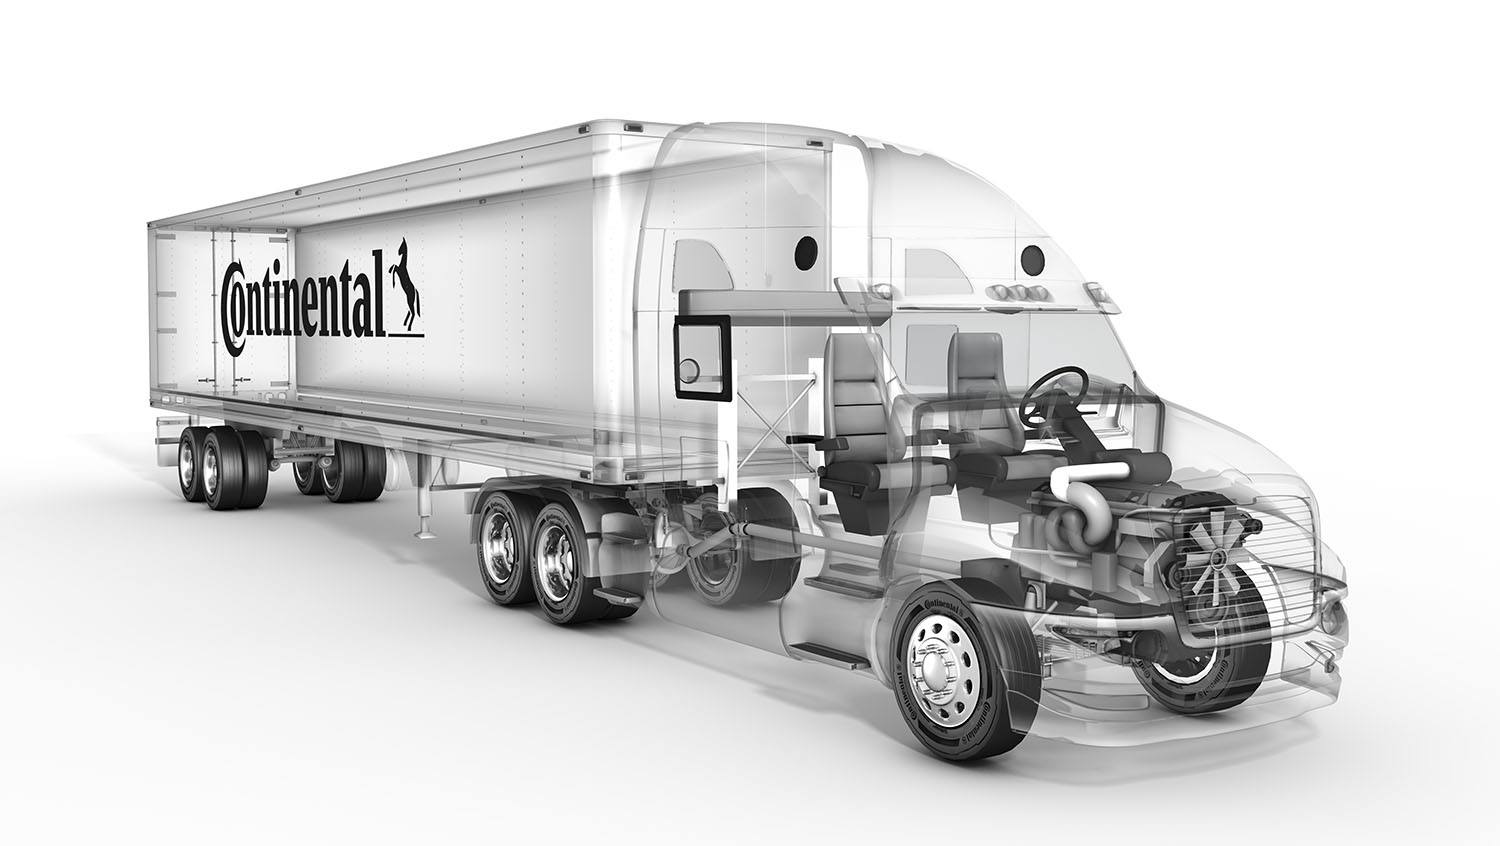 CGI imagery of see-through truck for Continental Tire.